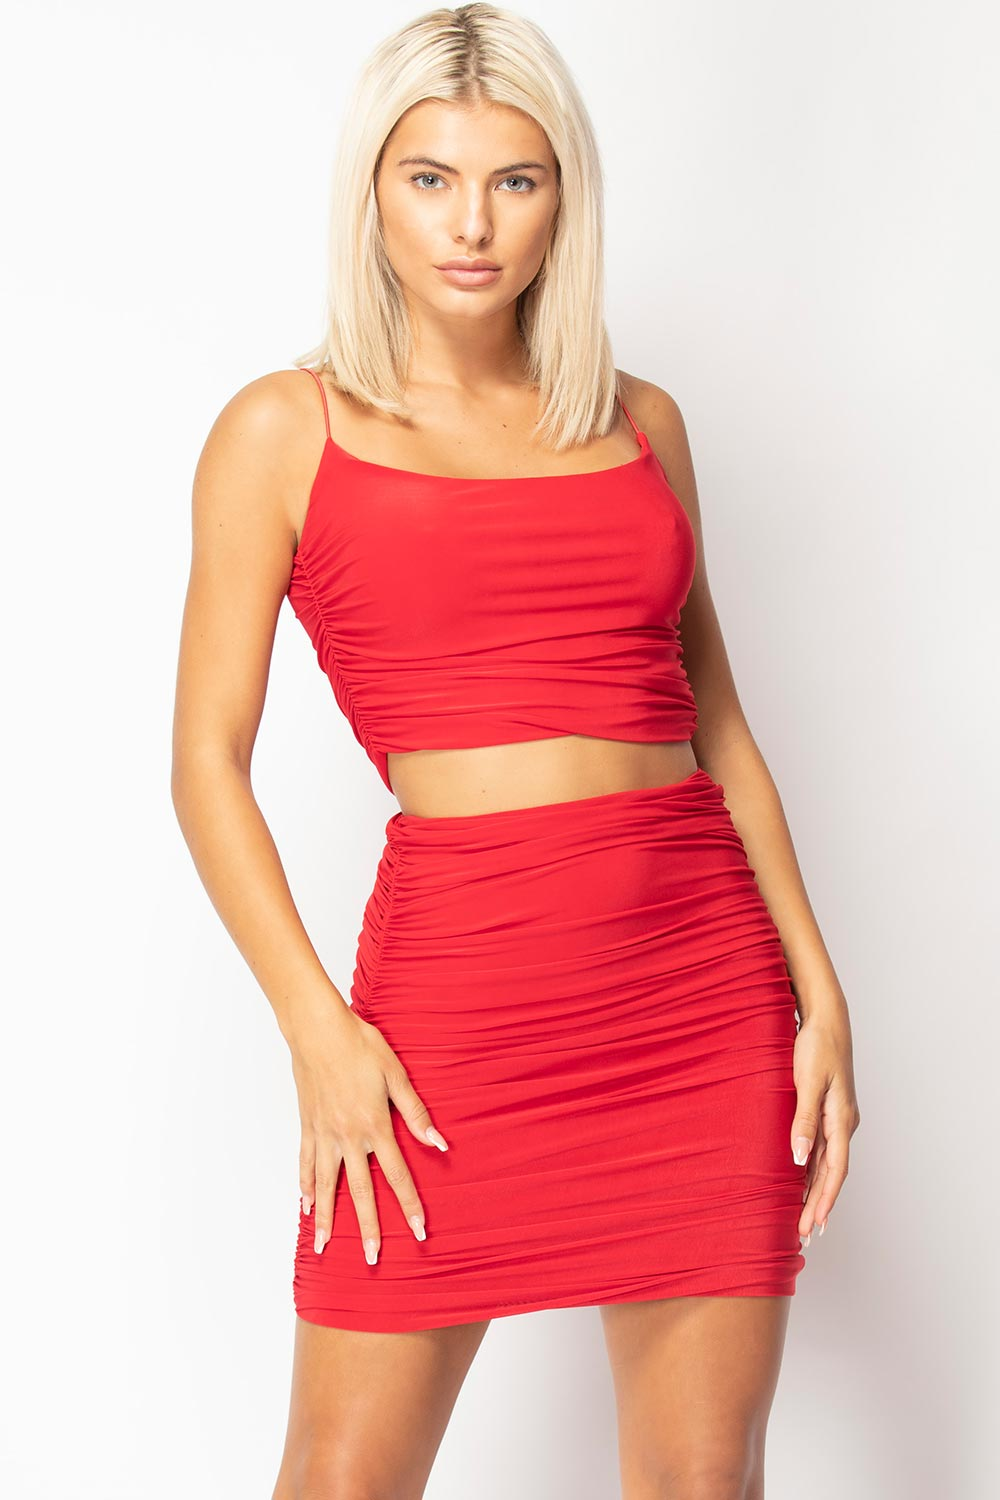 red skirt and crop top set